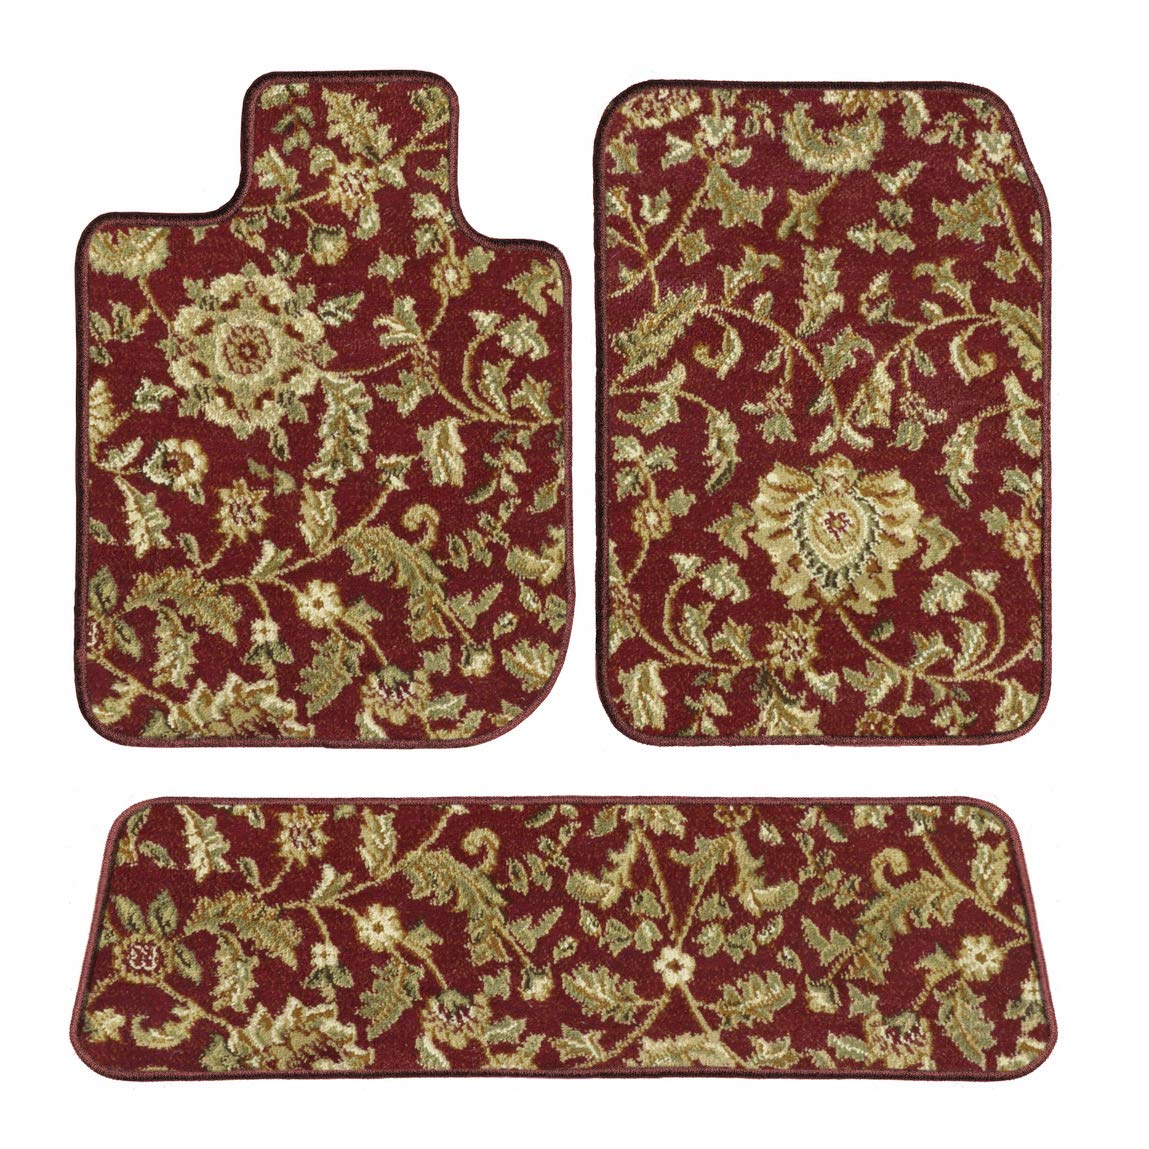 1997 2000 Dodge Grand Caravan Red Oriental Driver 1998 1999 GGBAILEY D4563A-S2B-RD-IS Custom Fit Automotive Carpet Floor Mats for 1996 Passenger /& Rear